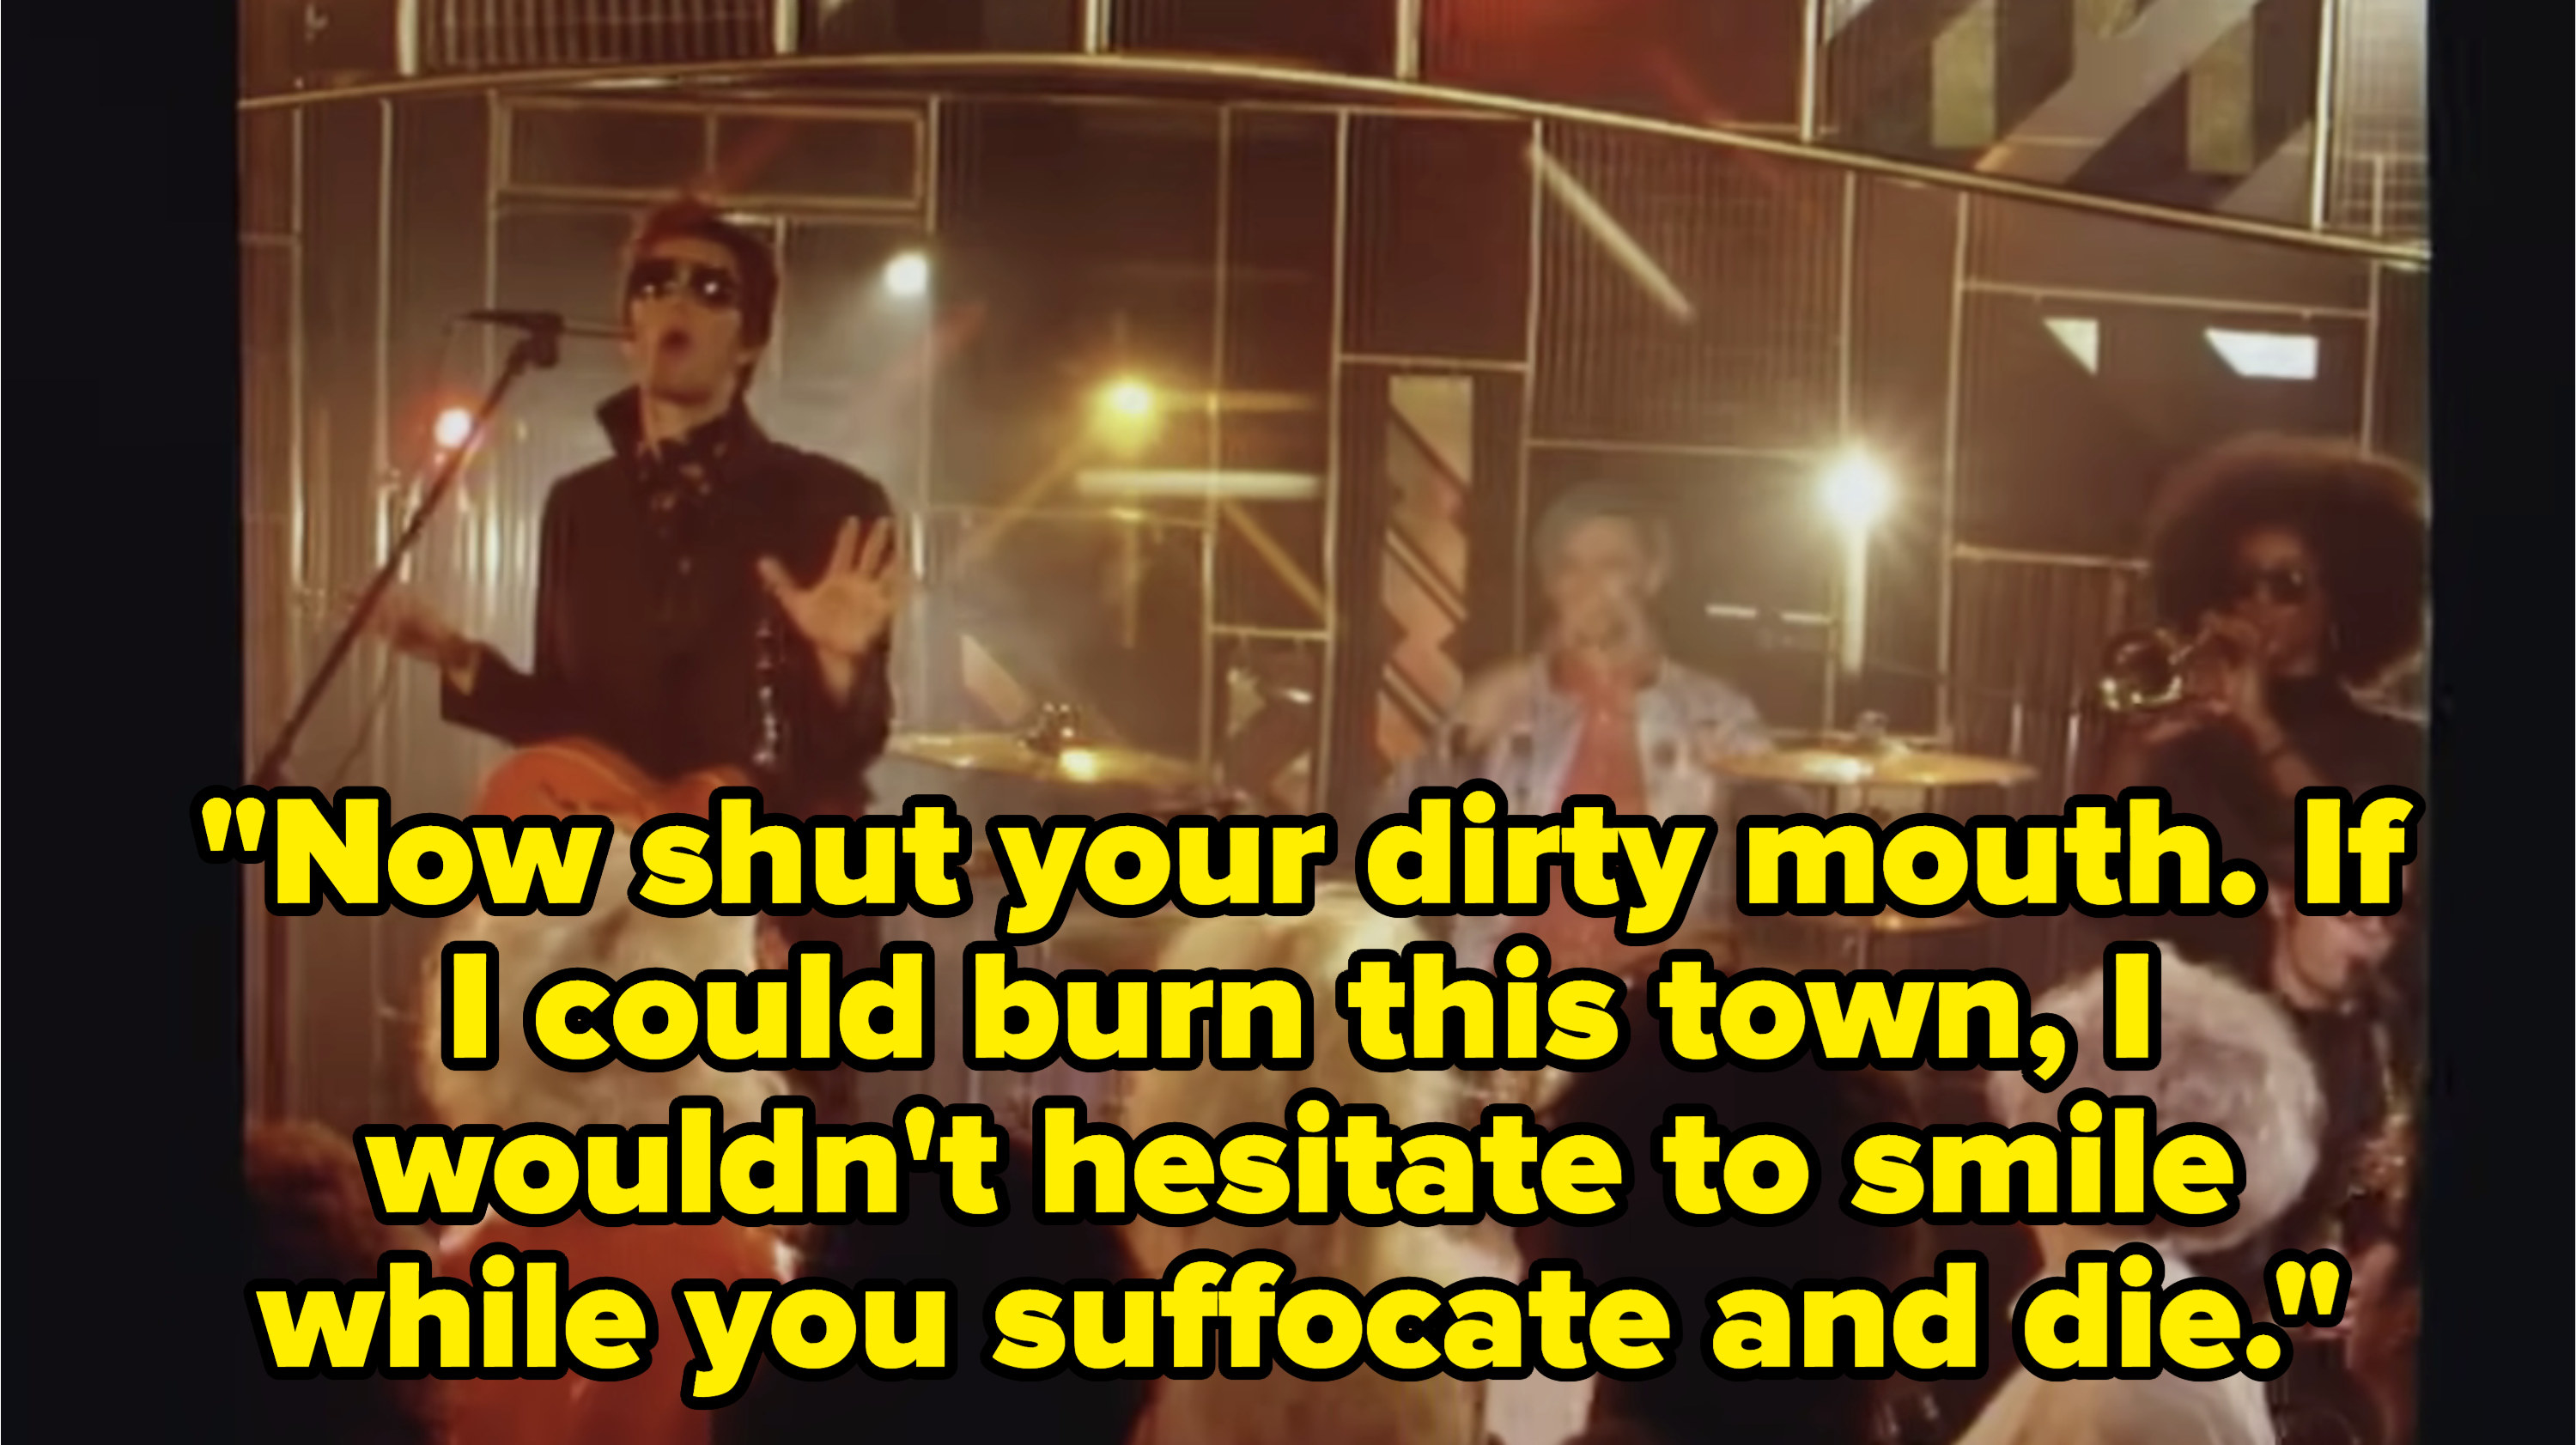 Lyrics: Now shut your dirty mouth. If I could burn this town, I wouldn't hesitate to smile while you suffocate and die